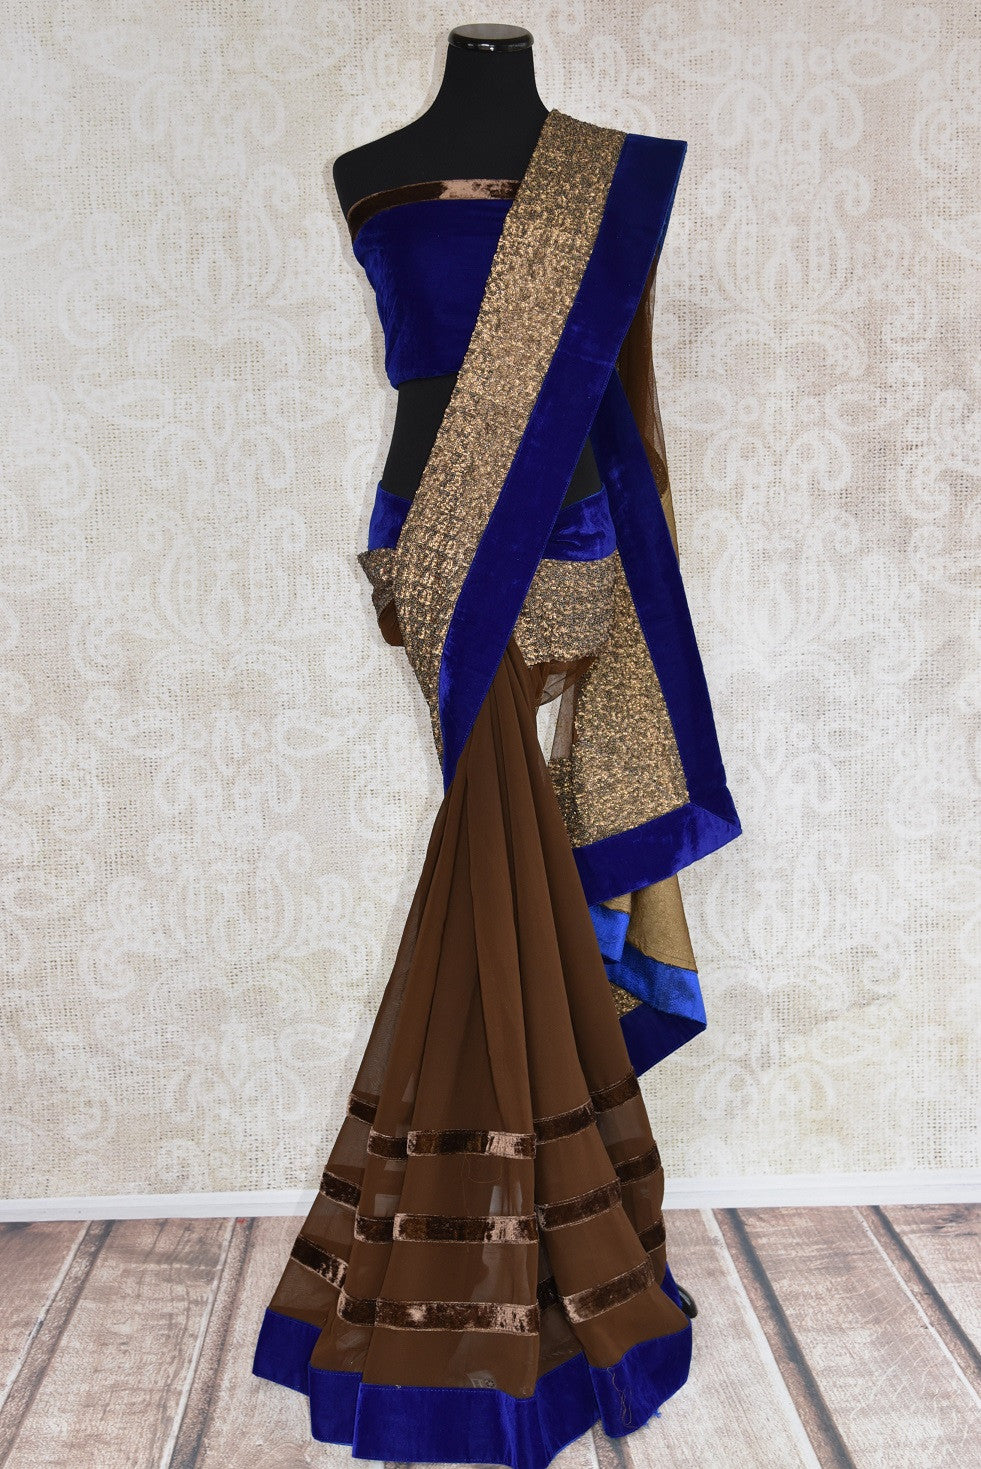 90B577 Half georgette, half net saree with velvet border and thick golden trim, available online at Pure Elegance, USA. The brown and blue sari makes for the perfect Indian party wear outfit for this season!